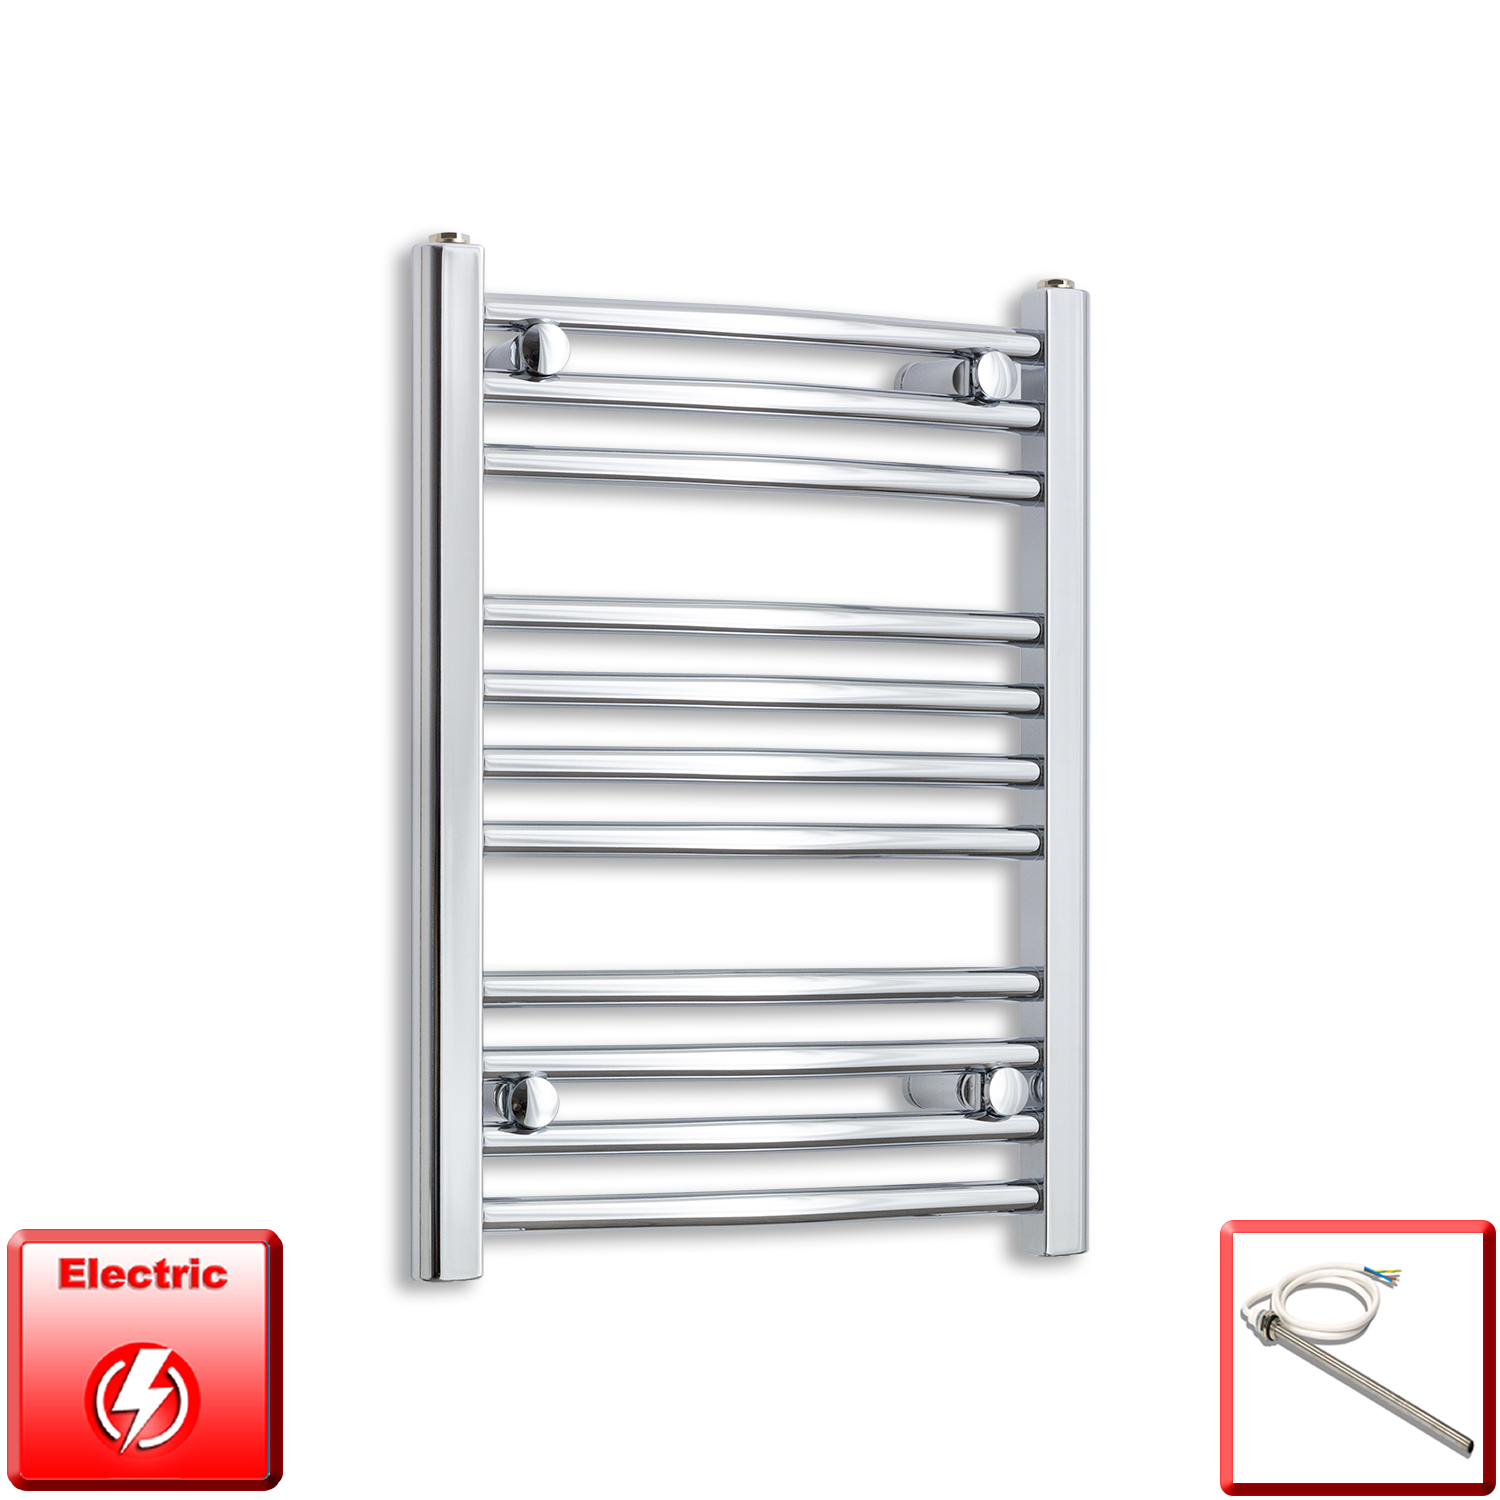 400mm Wide 600mm High Pre-Filled Chrome Electric Towel Rail Radiator With Single Heat Element